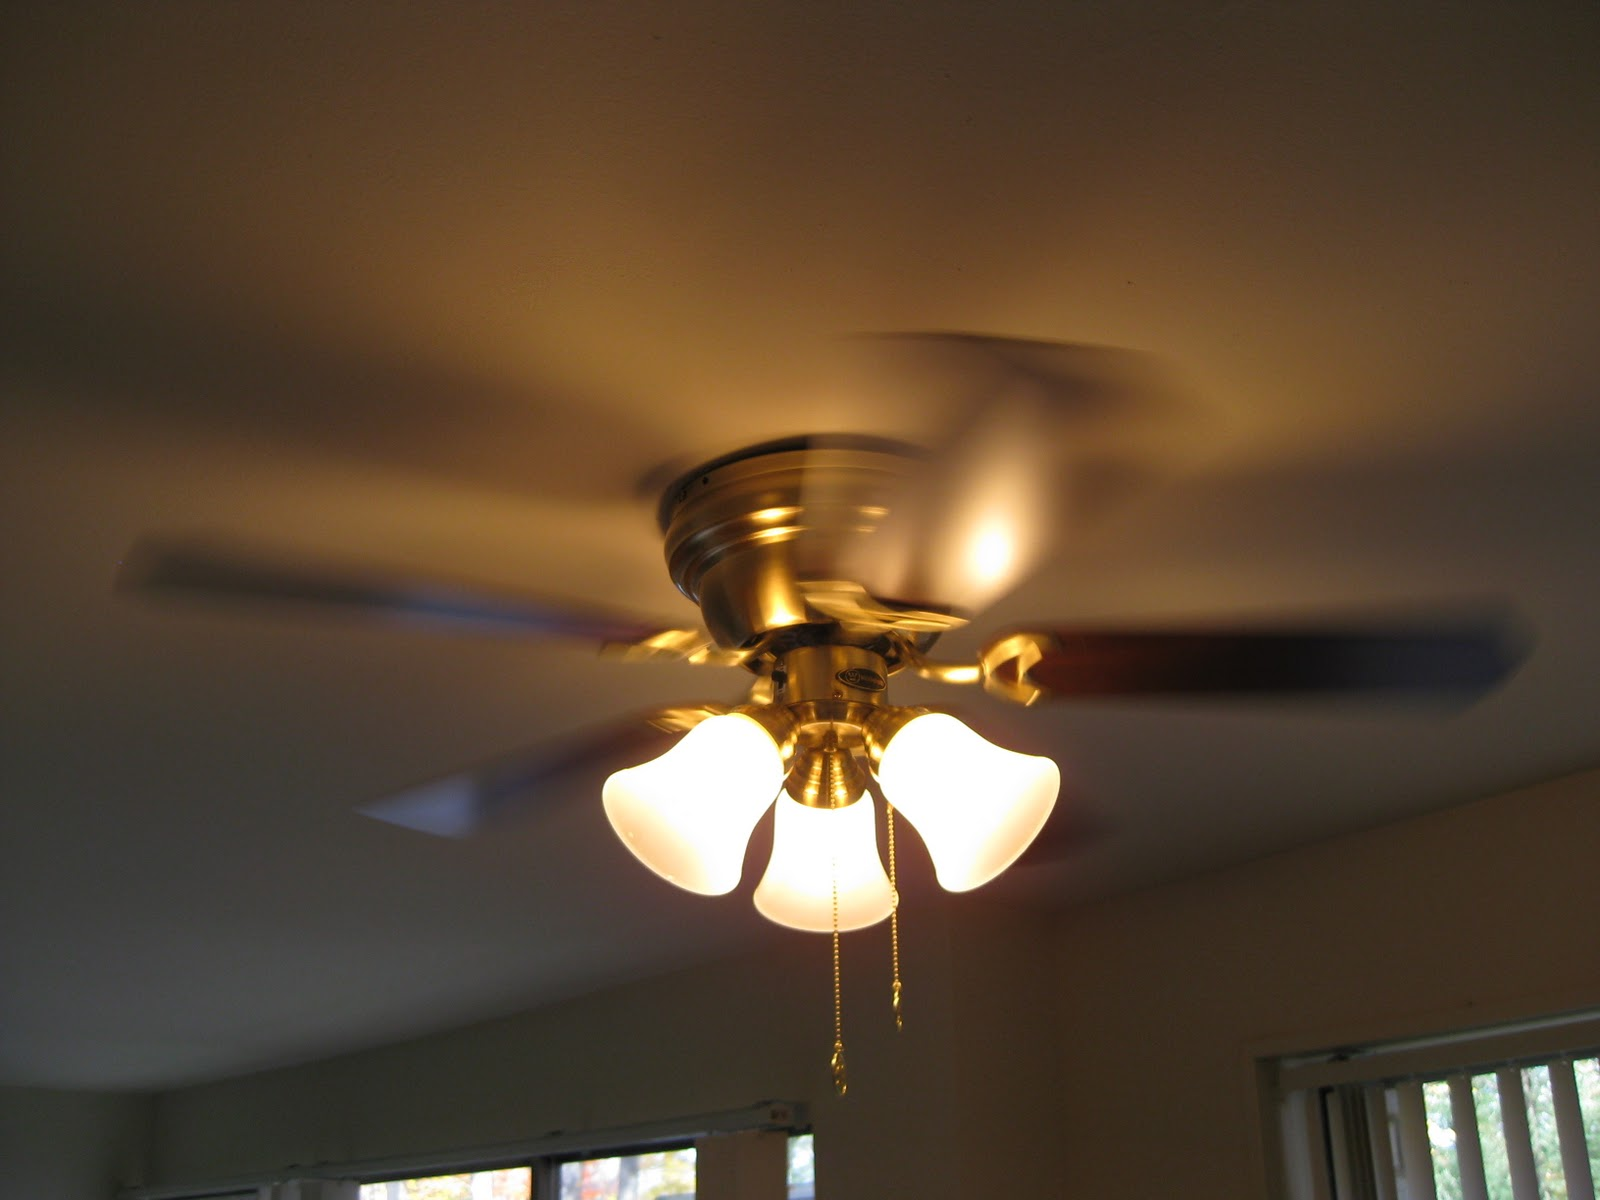 Make Sure Your Fan Is Set To Run Clockwise Spread Heat Evenly Through Room Energystar Gov Explains Proper Ceiling Use